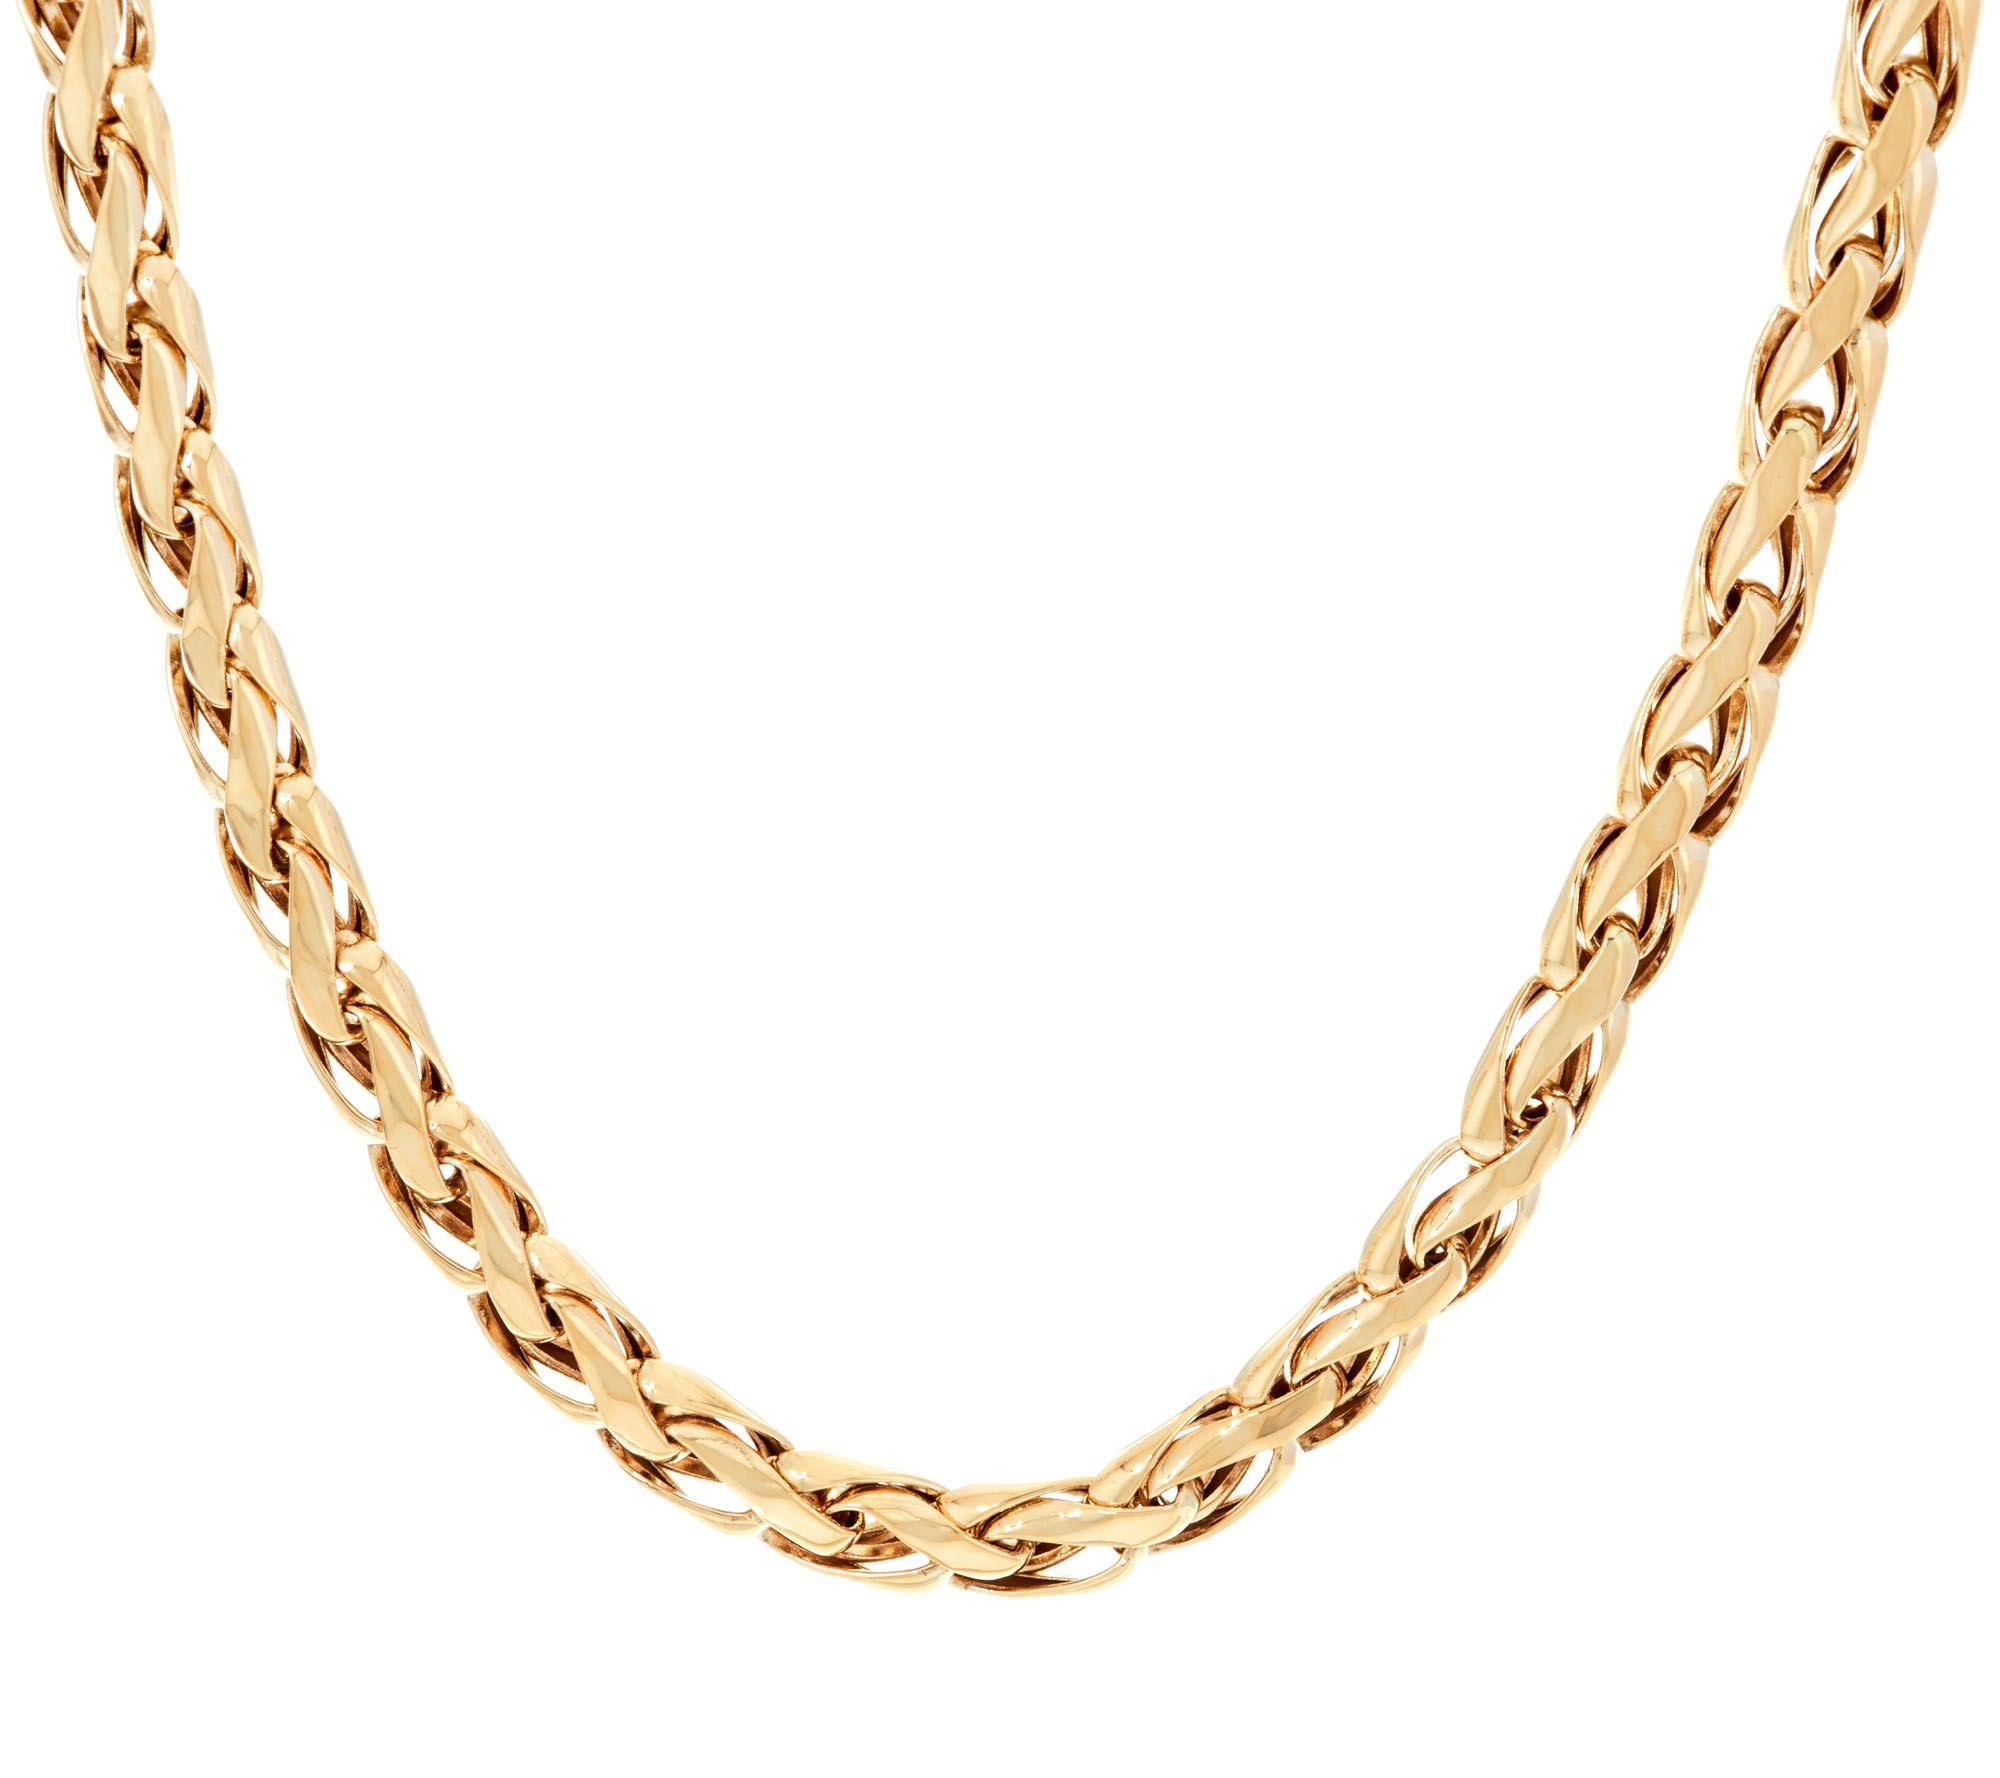 Shiny Wheat Spiga Woven Link Chain Necklace Real 14k